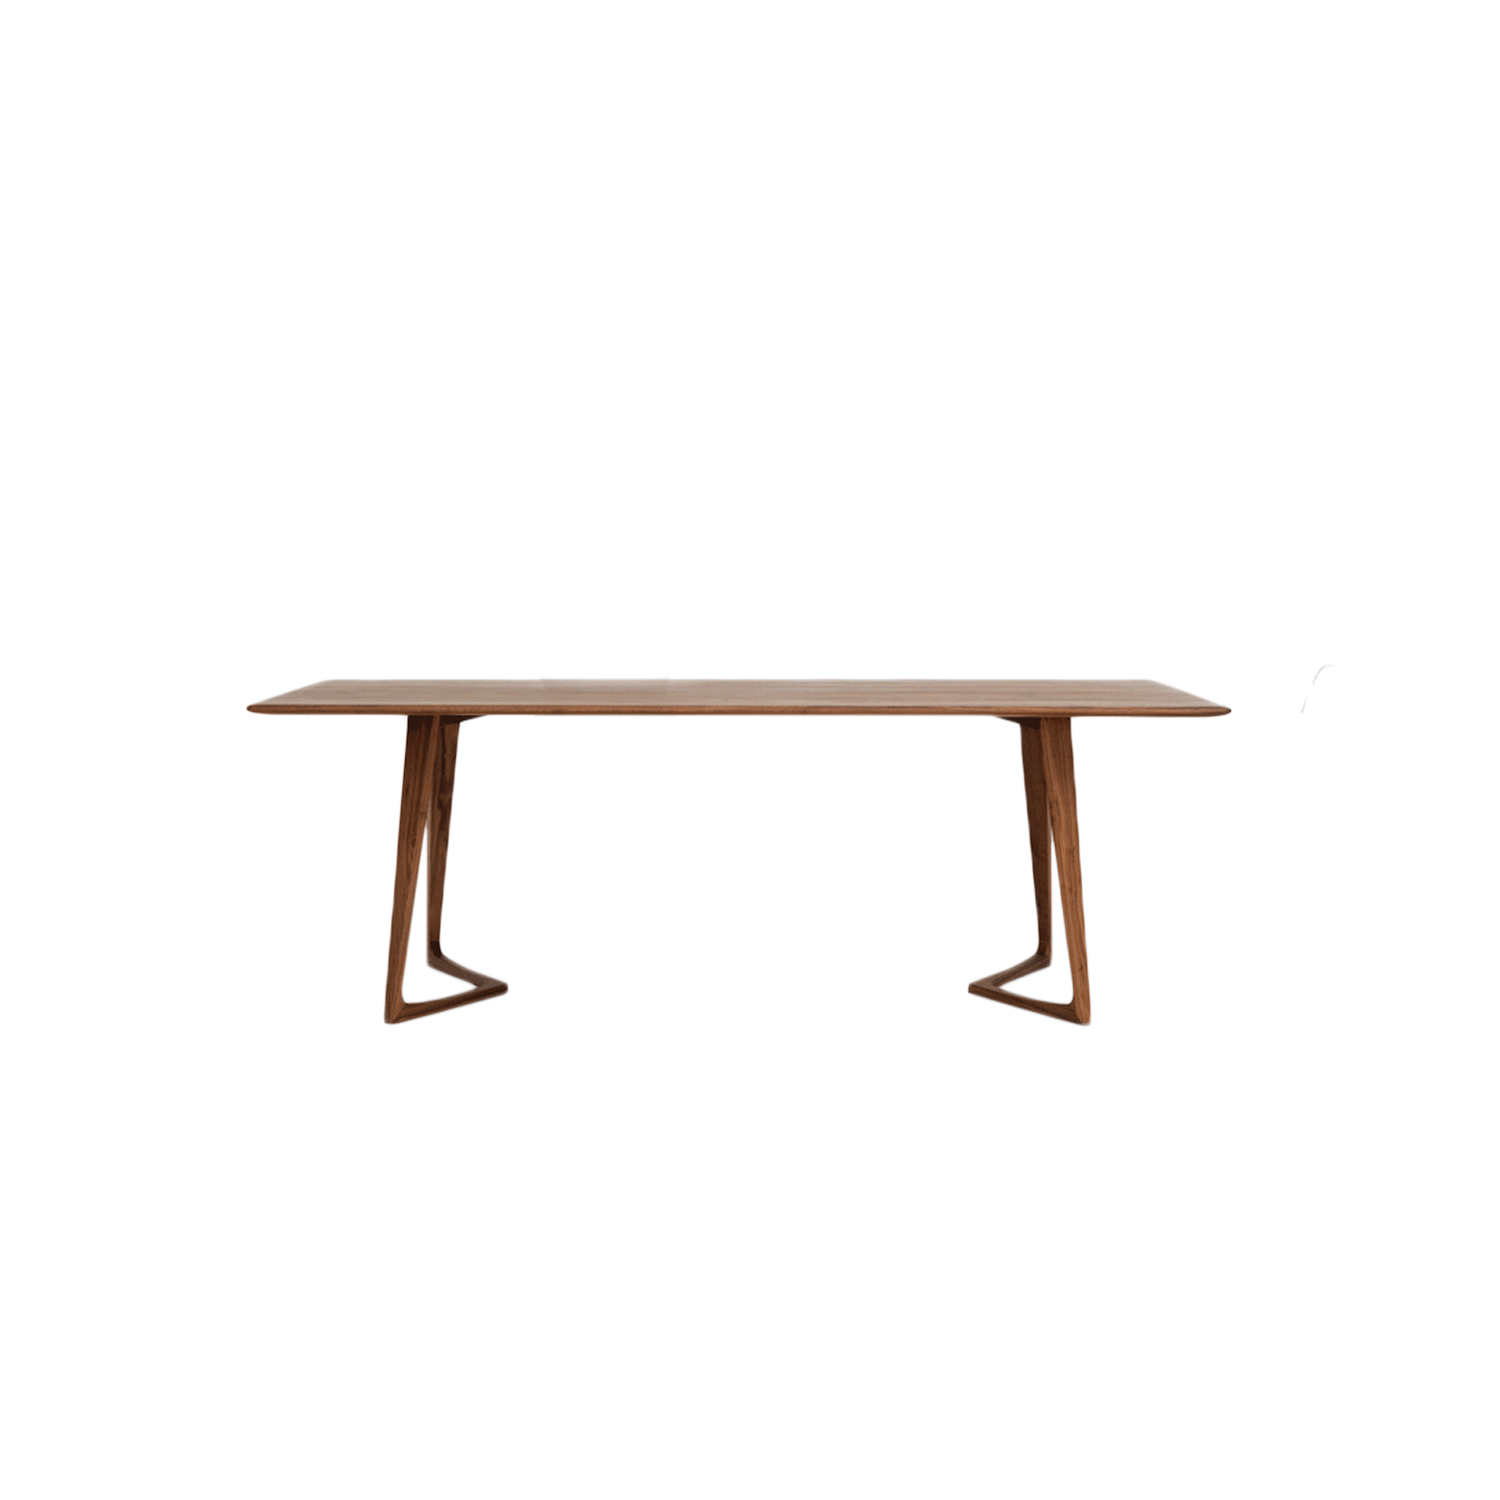 Twist Rectangular Table - TWIST – the biomorphic structure of the lightweight frame combines structural strength with flowing shapes while underscoring the sophisticated edge profiling of the tabletop. TWIST is available in round, oval and rectangular. The product family consists of the dining table TWIST, the couch tables TWIST COUCH and TWIST STONE and the bed table TWIST NIGHT.  Twist round table comes in oiled oak, colour stained oak, oiled American walnut and oiled European walnut. Available in different sizes upon request.  Colour stained oak option is available upon request at an additional charge. For colour stained oak options, please refer to the catalogue.  | Matter of Stuff